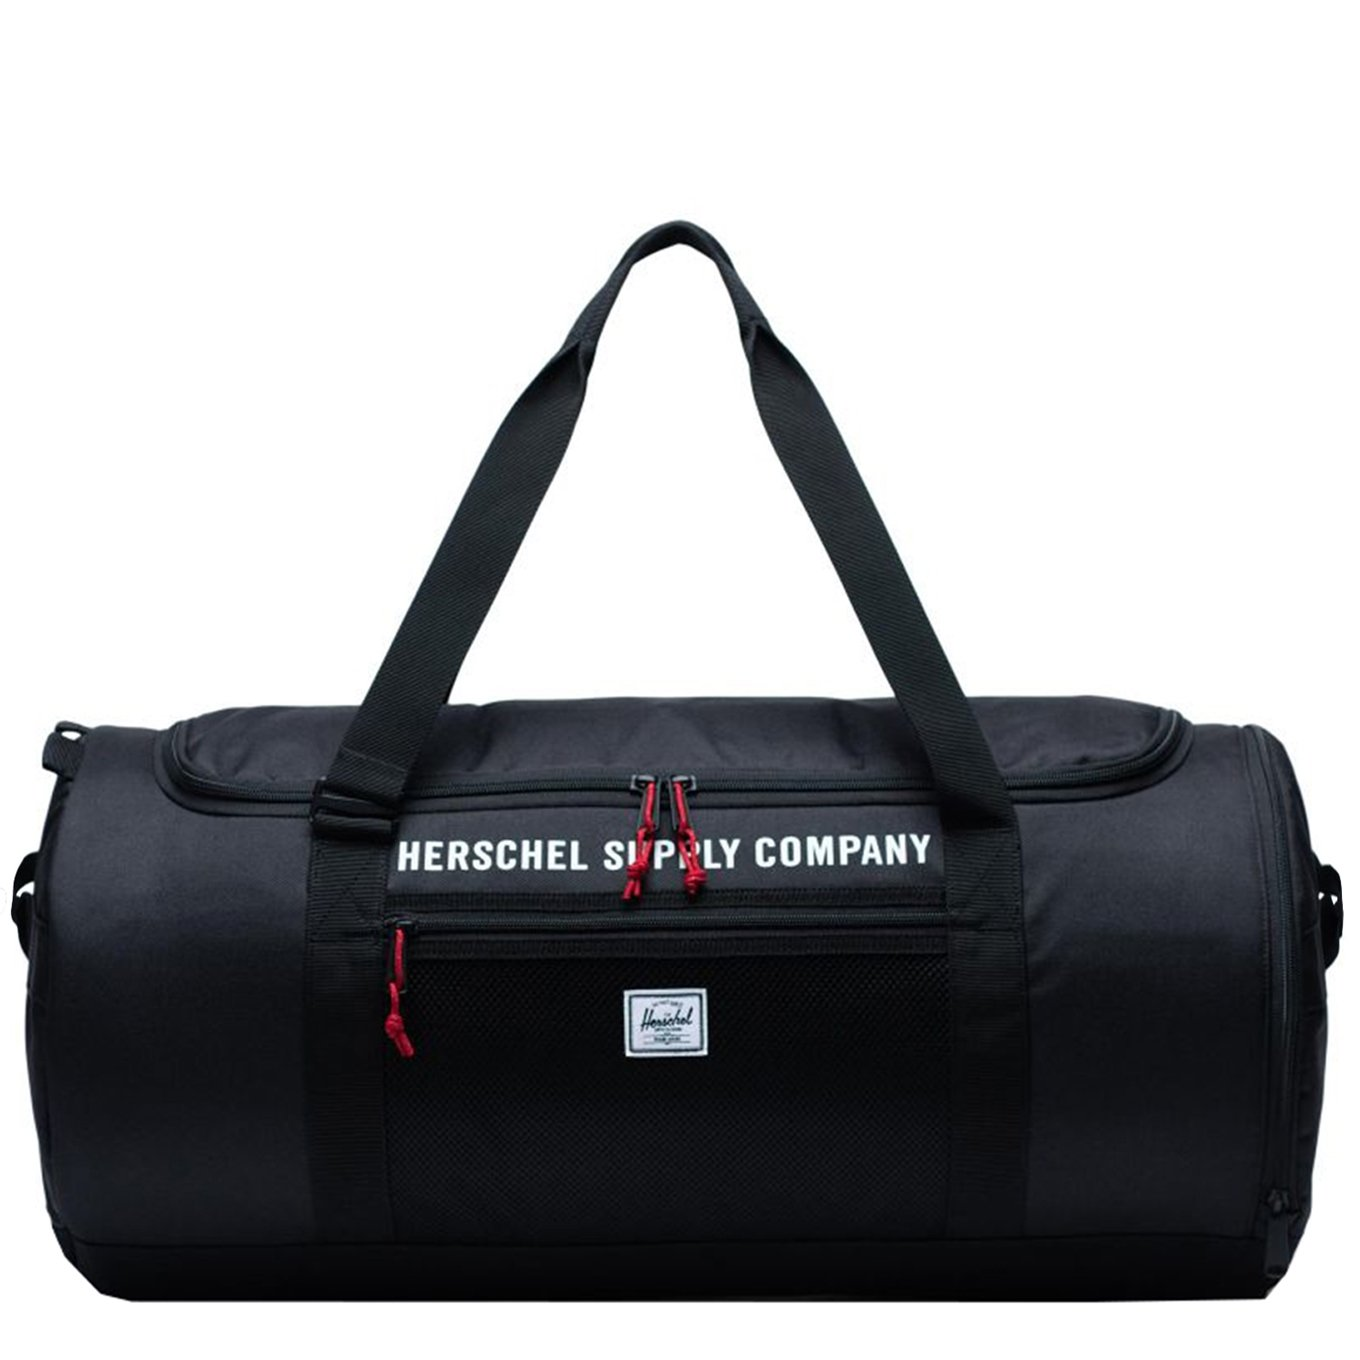 Herschel Sutton Carryall Reistas Black